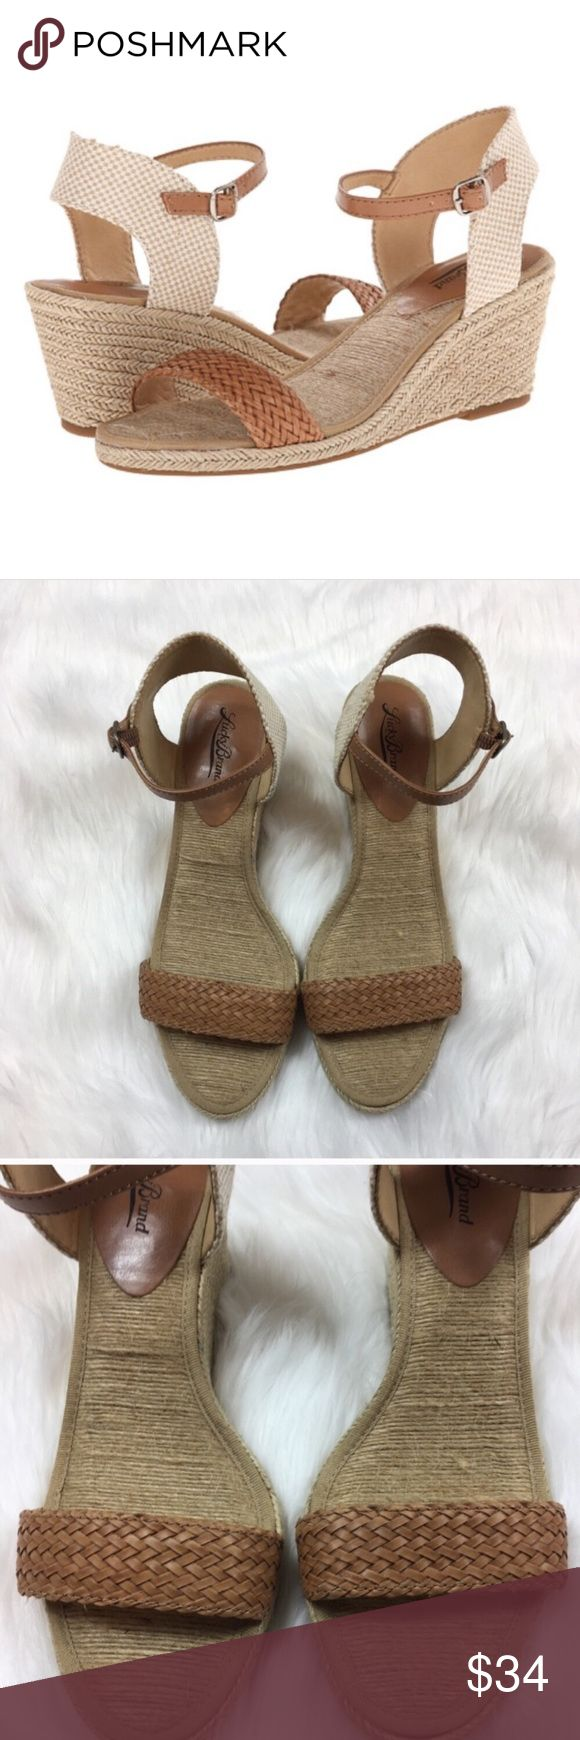 Lucky Brand Kabelli Natural Espadrille Platforms Lucky Brand Kabelli Natural Espadrille Platforms. Size 10. Pre-owned condition with basic wear. Still has retail sticker on bottom but are not NWT. No box. Has a few little scuffs.  ❌I do not Trade 🙅🏻 Or model💲 Posh Transactions ONLY Lucky Brand Shoes Sandals